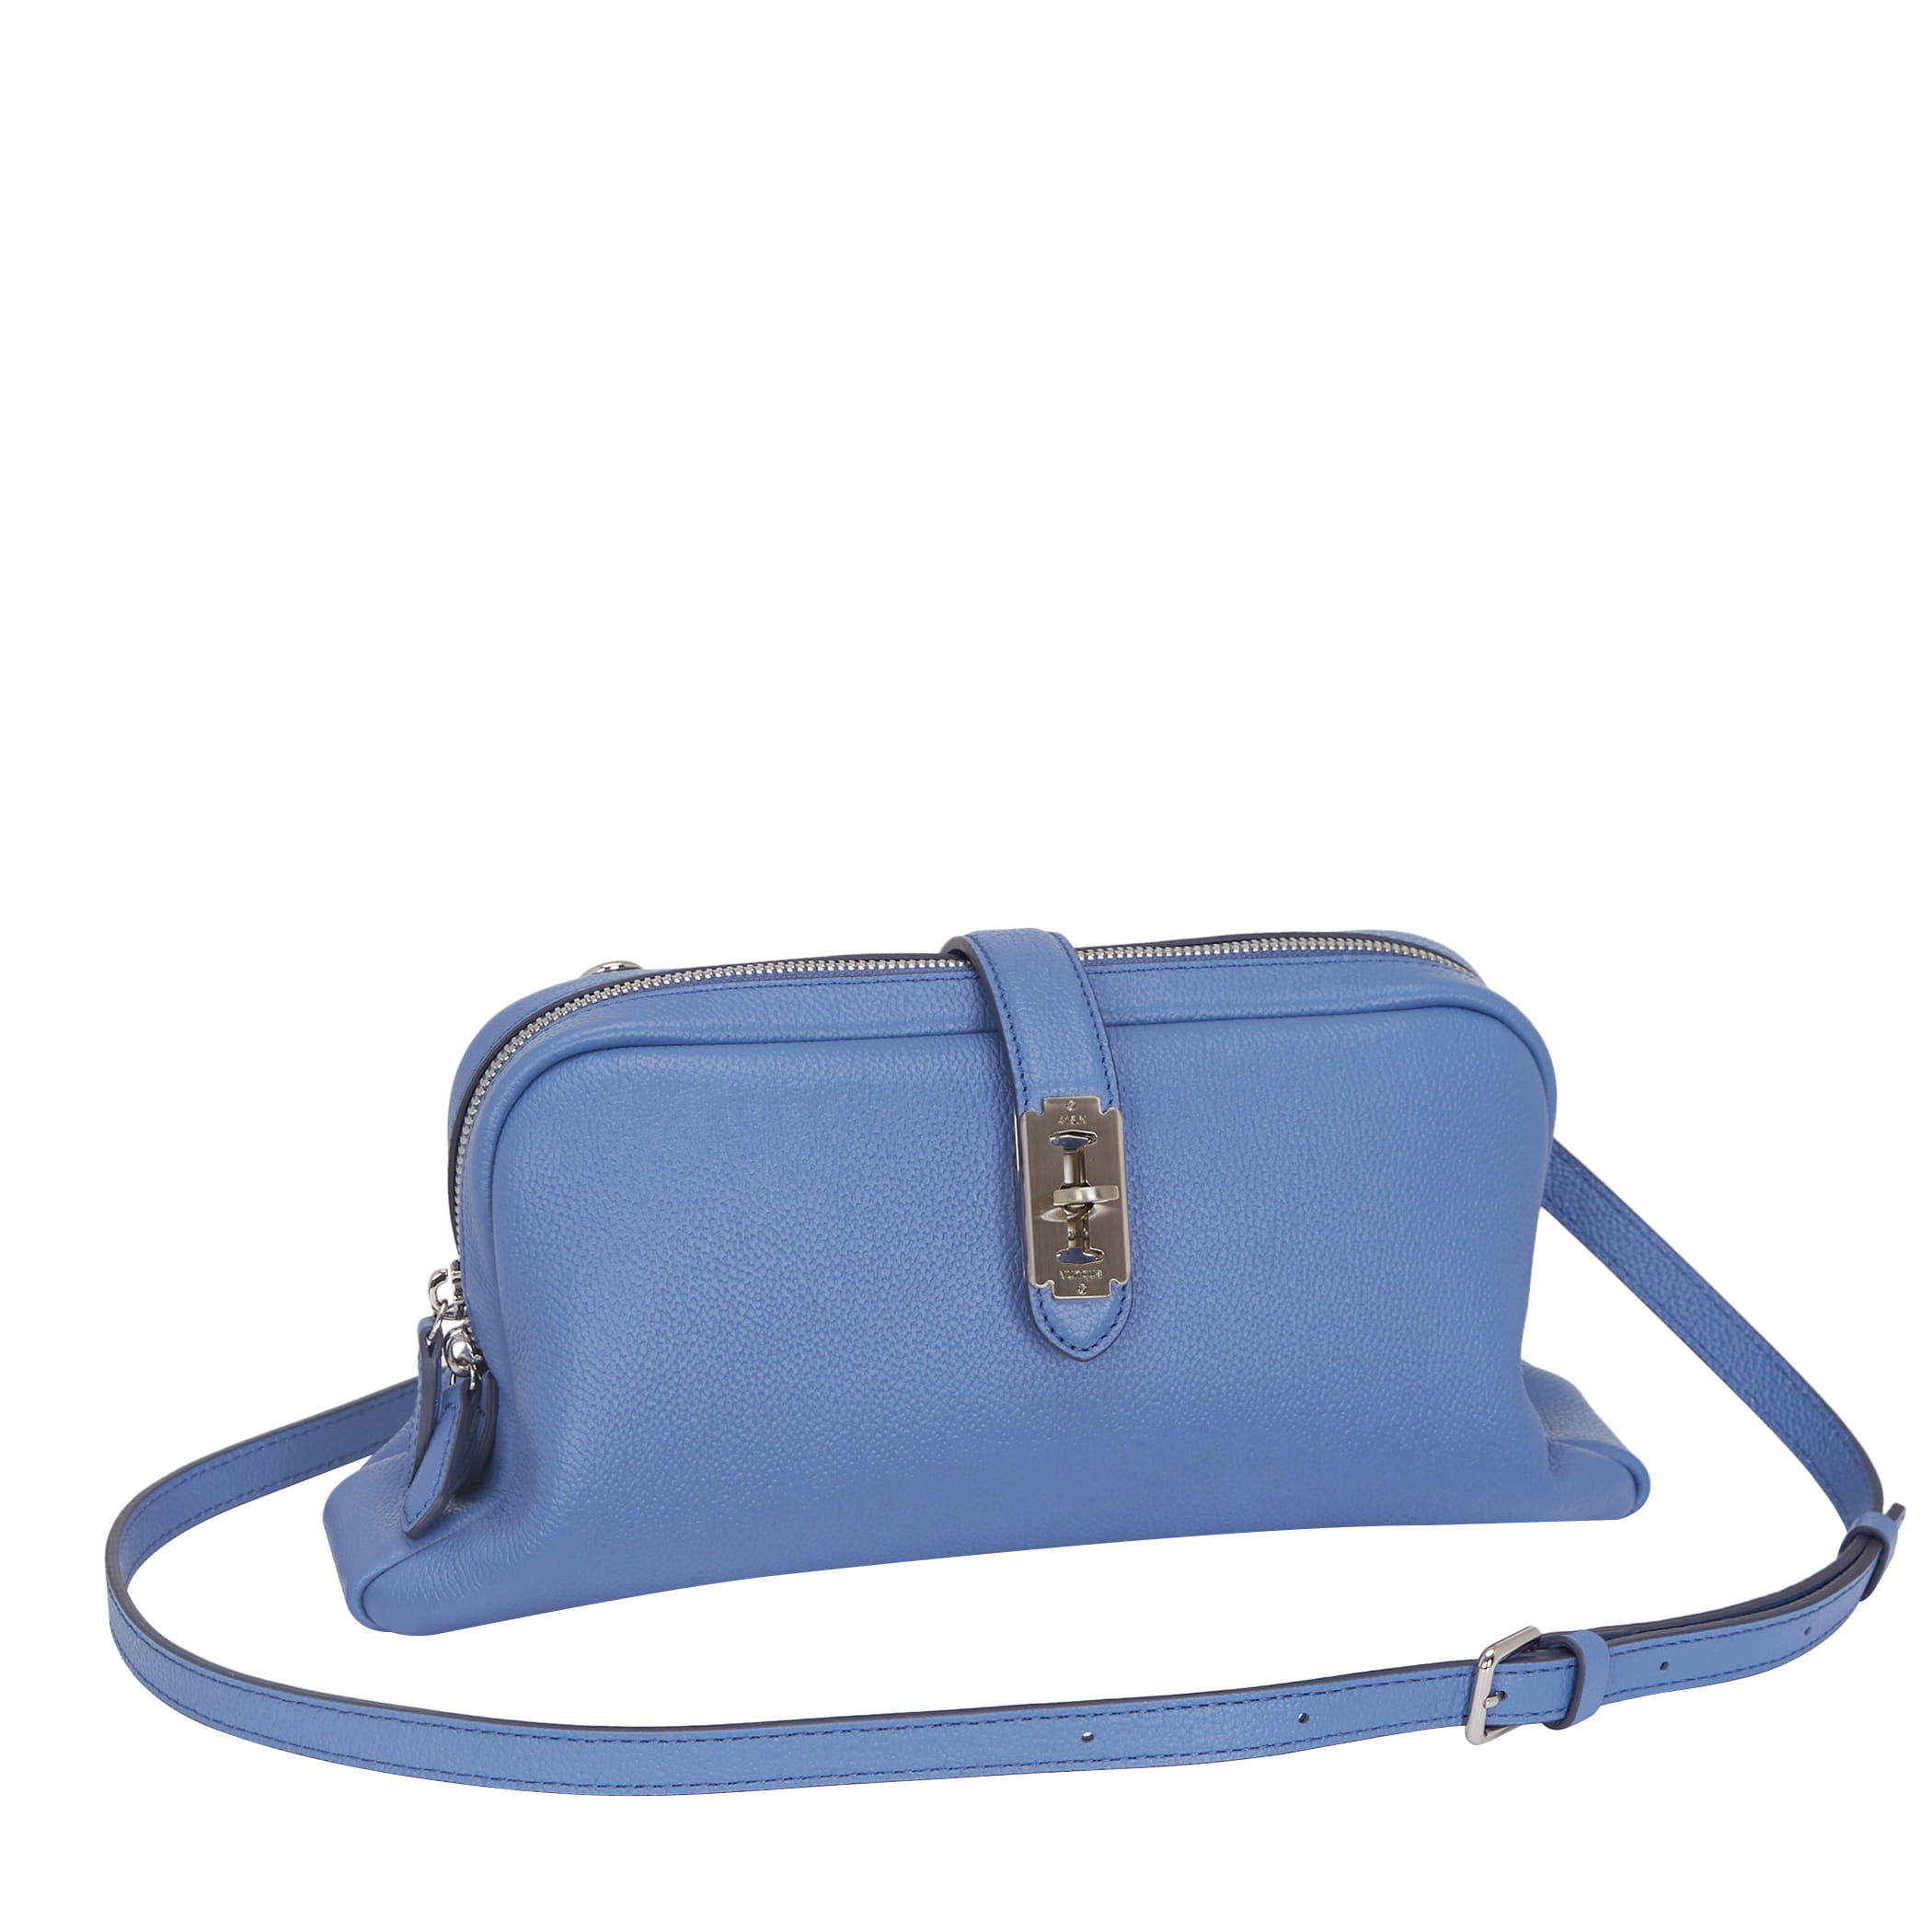 Toque Clutch (토크 클러치) Calm blue